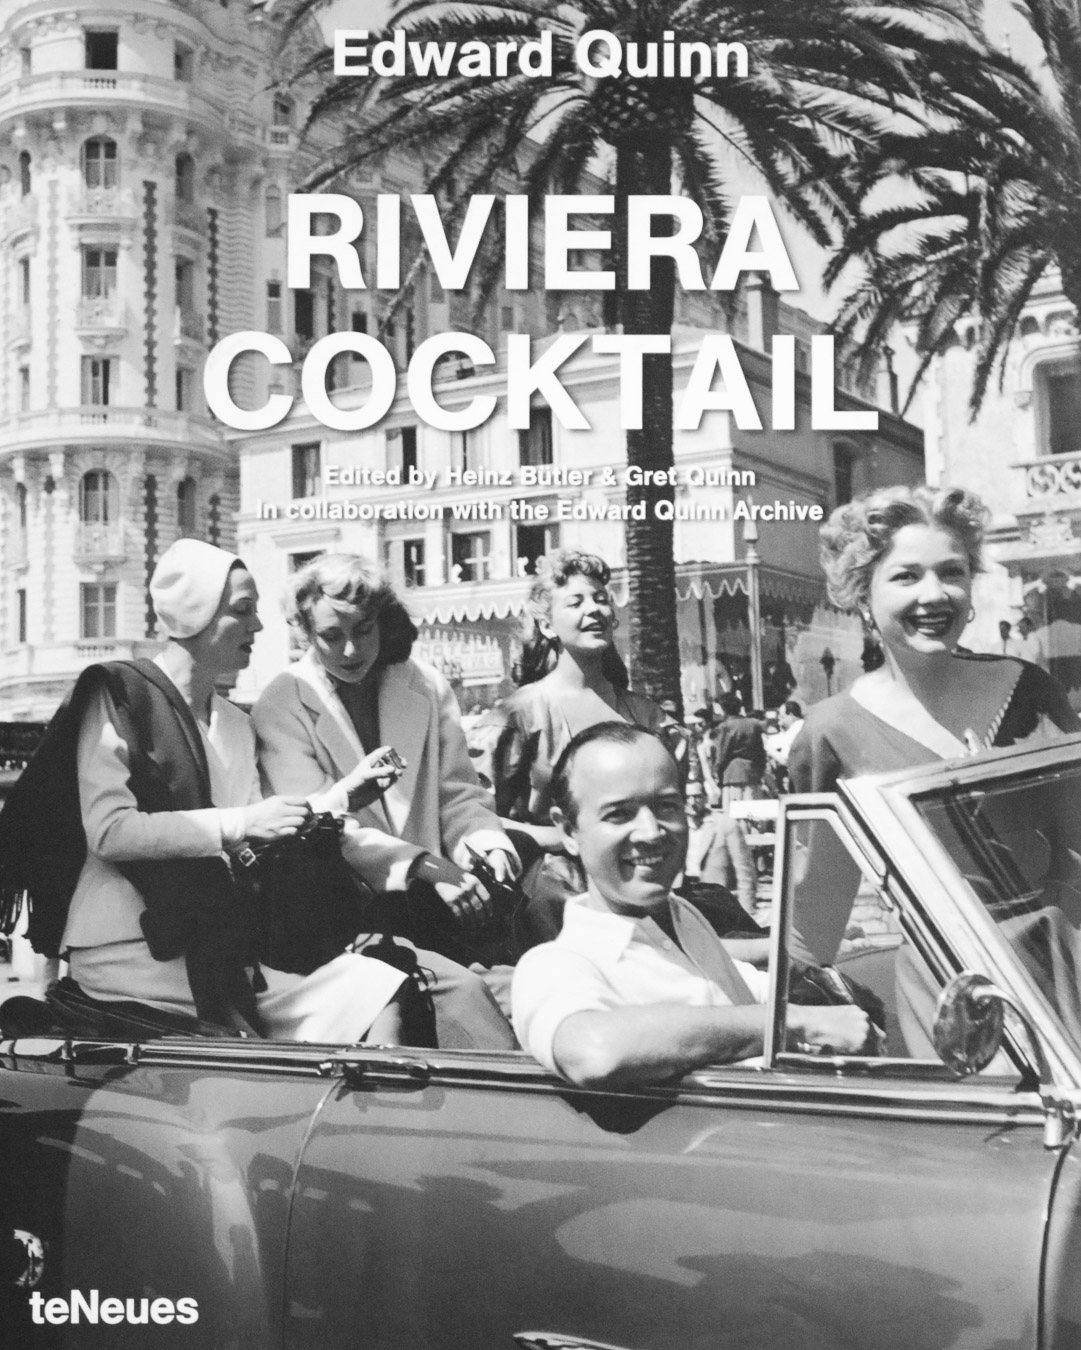 Riviera Cocktail by Edward Quinn